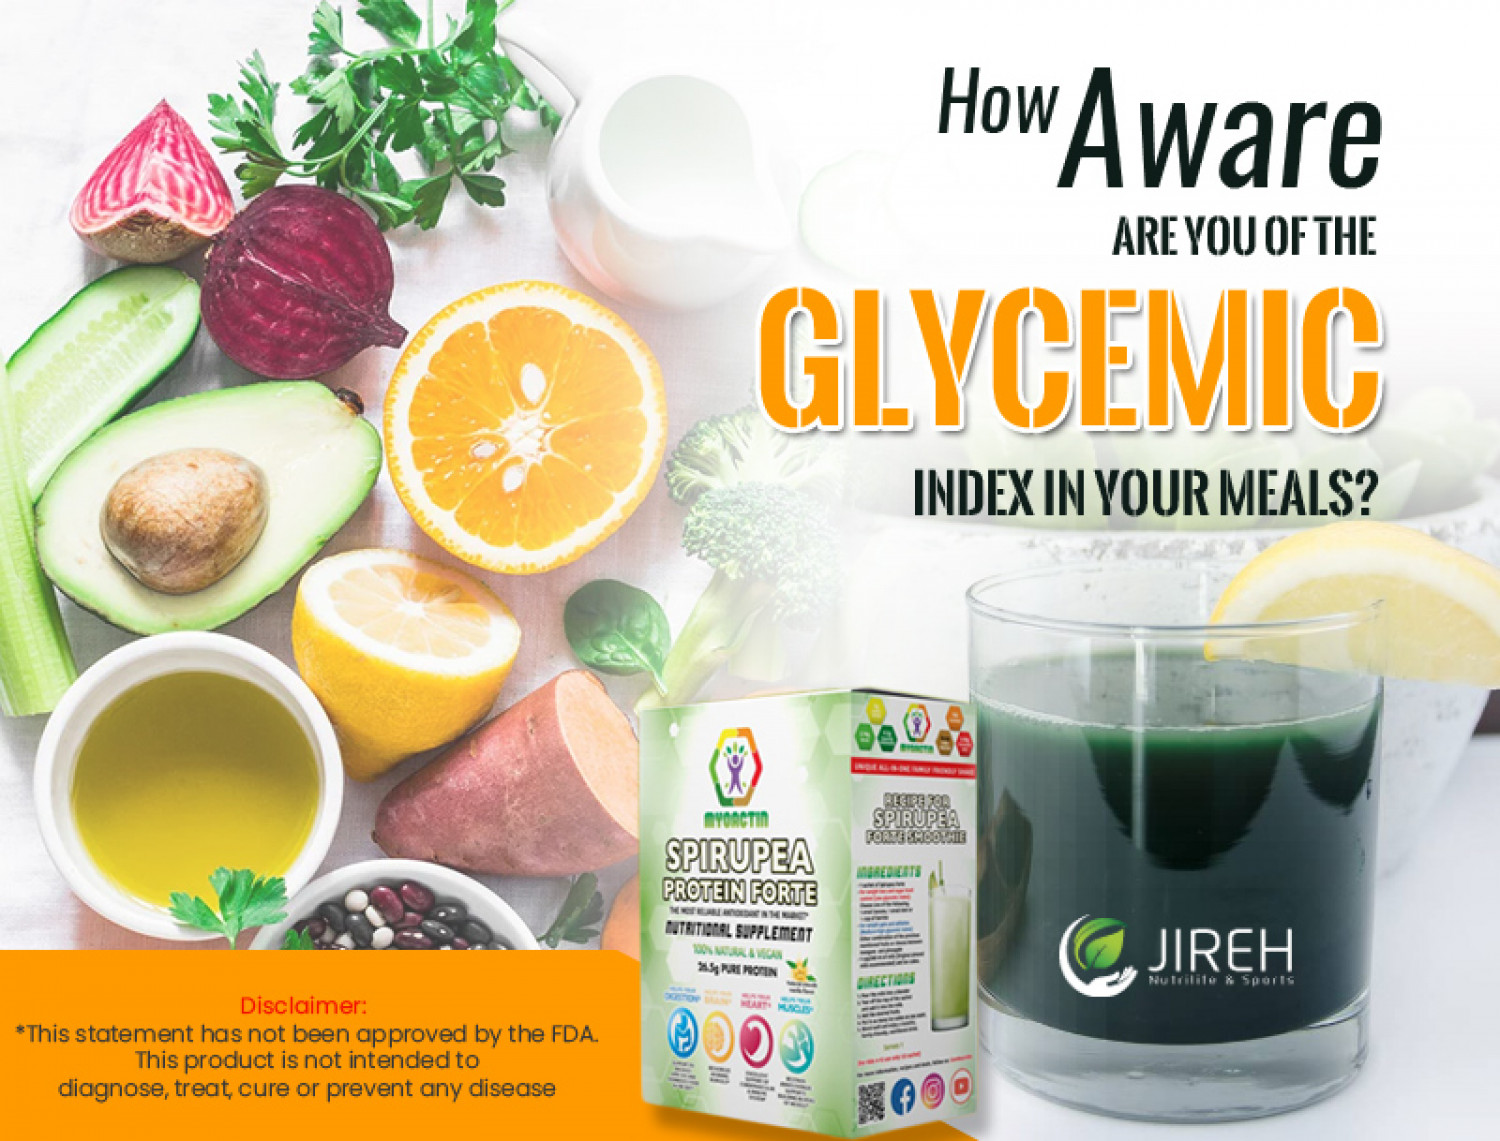 How Aware Are You of the Glycemic Index in Your Meals? Infographic